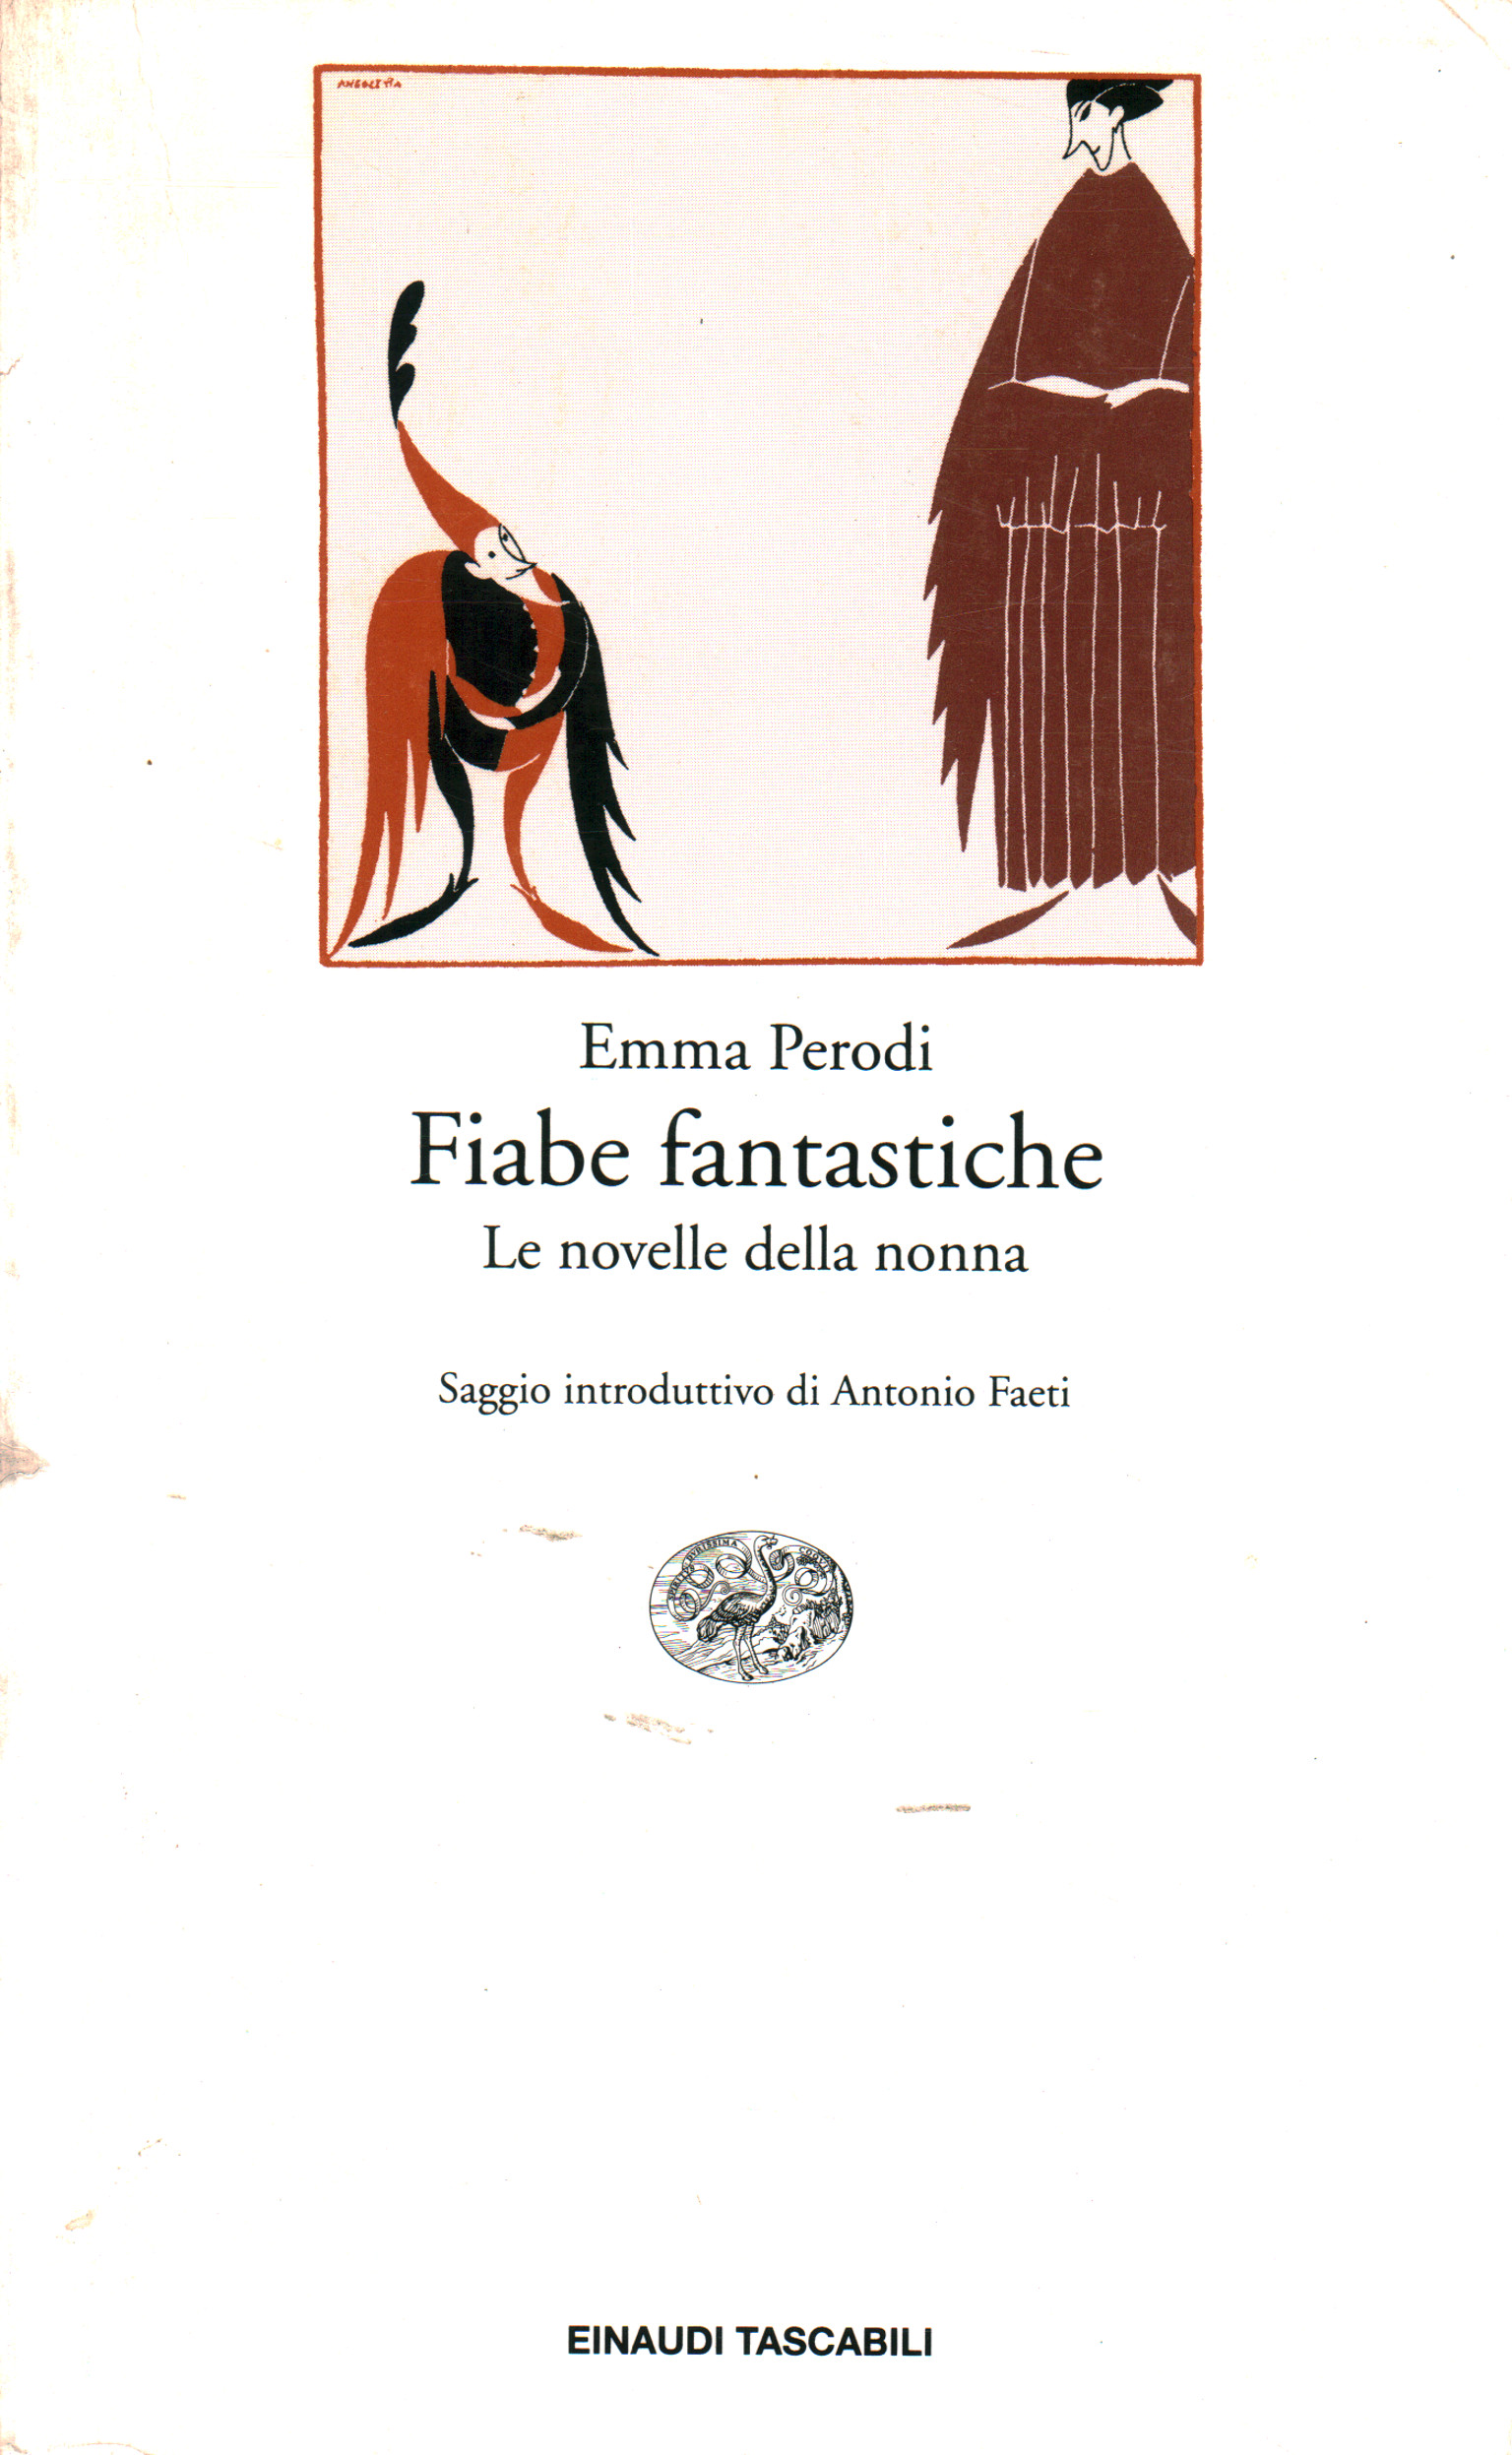 Fairy tales and fantastic, Emma Parodi